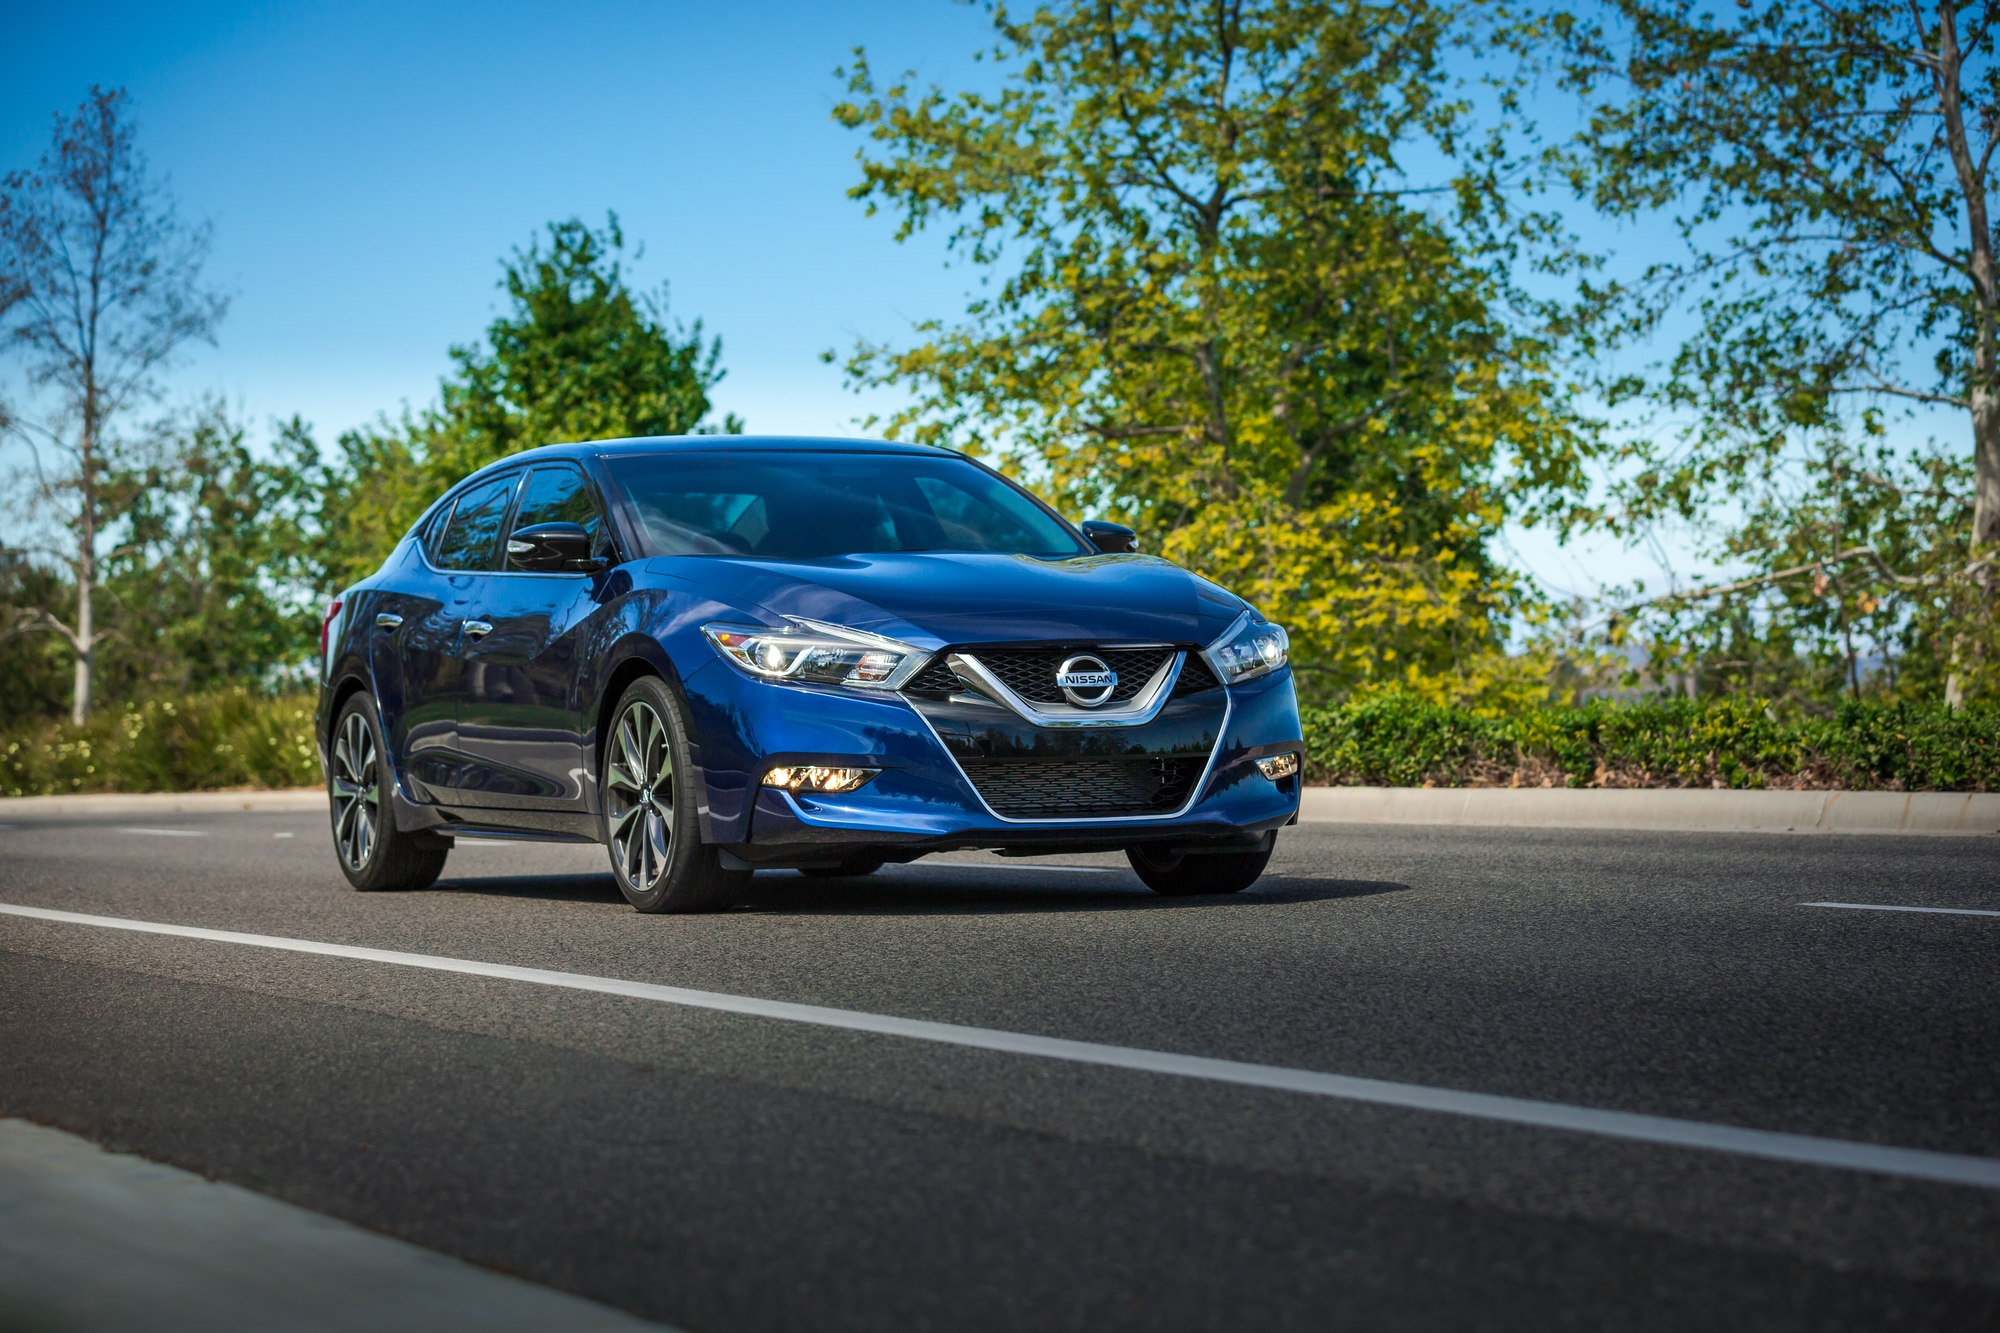 Nissan Maxima: Environmental factors influence the rate of corrosion